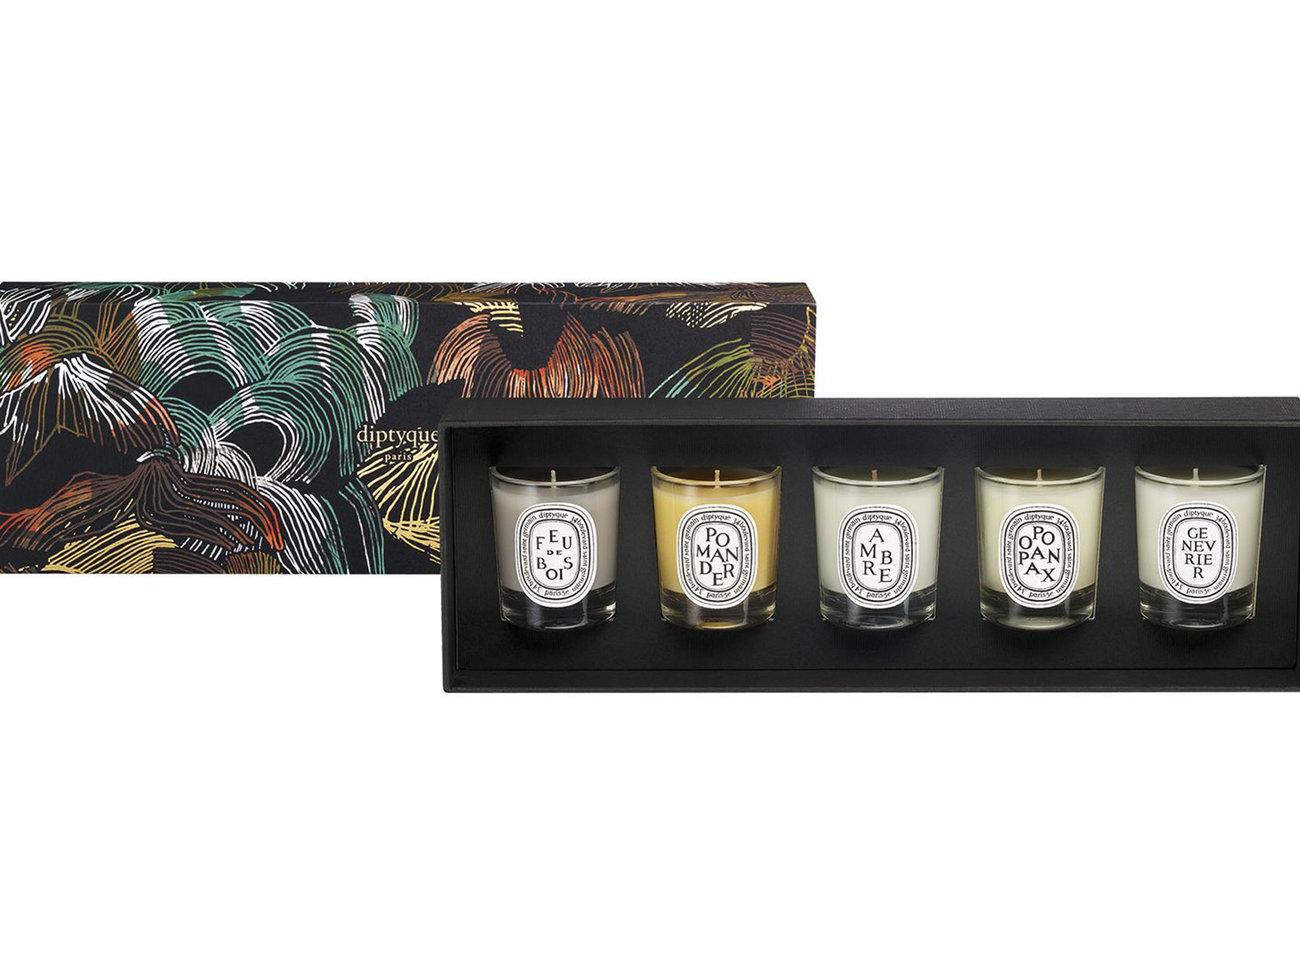 Diptyque-mini-candle-set-GG1215.jpg